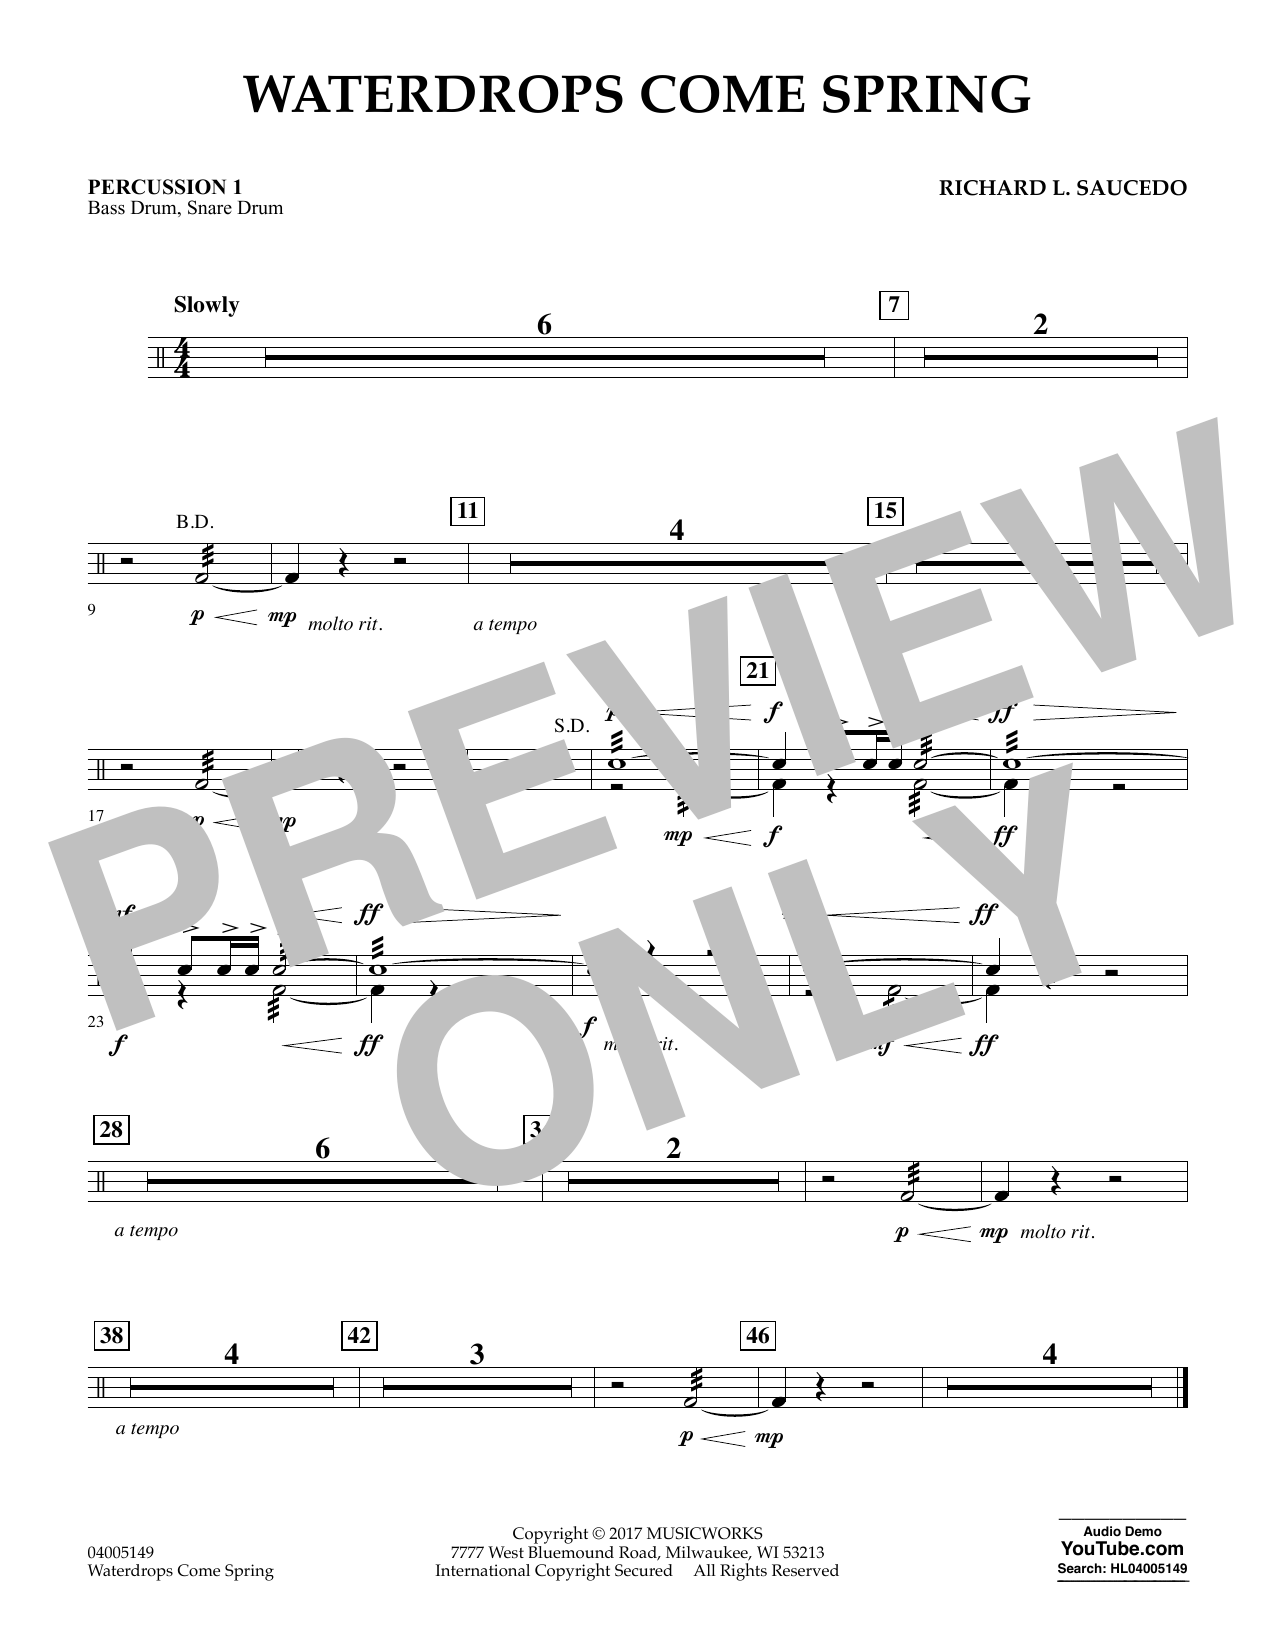 Waterdrops Come Spring - Percussion 1 Sheet Music